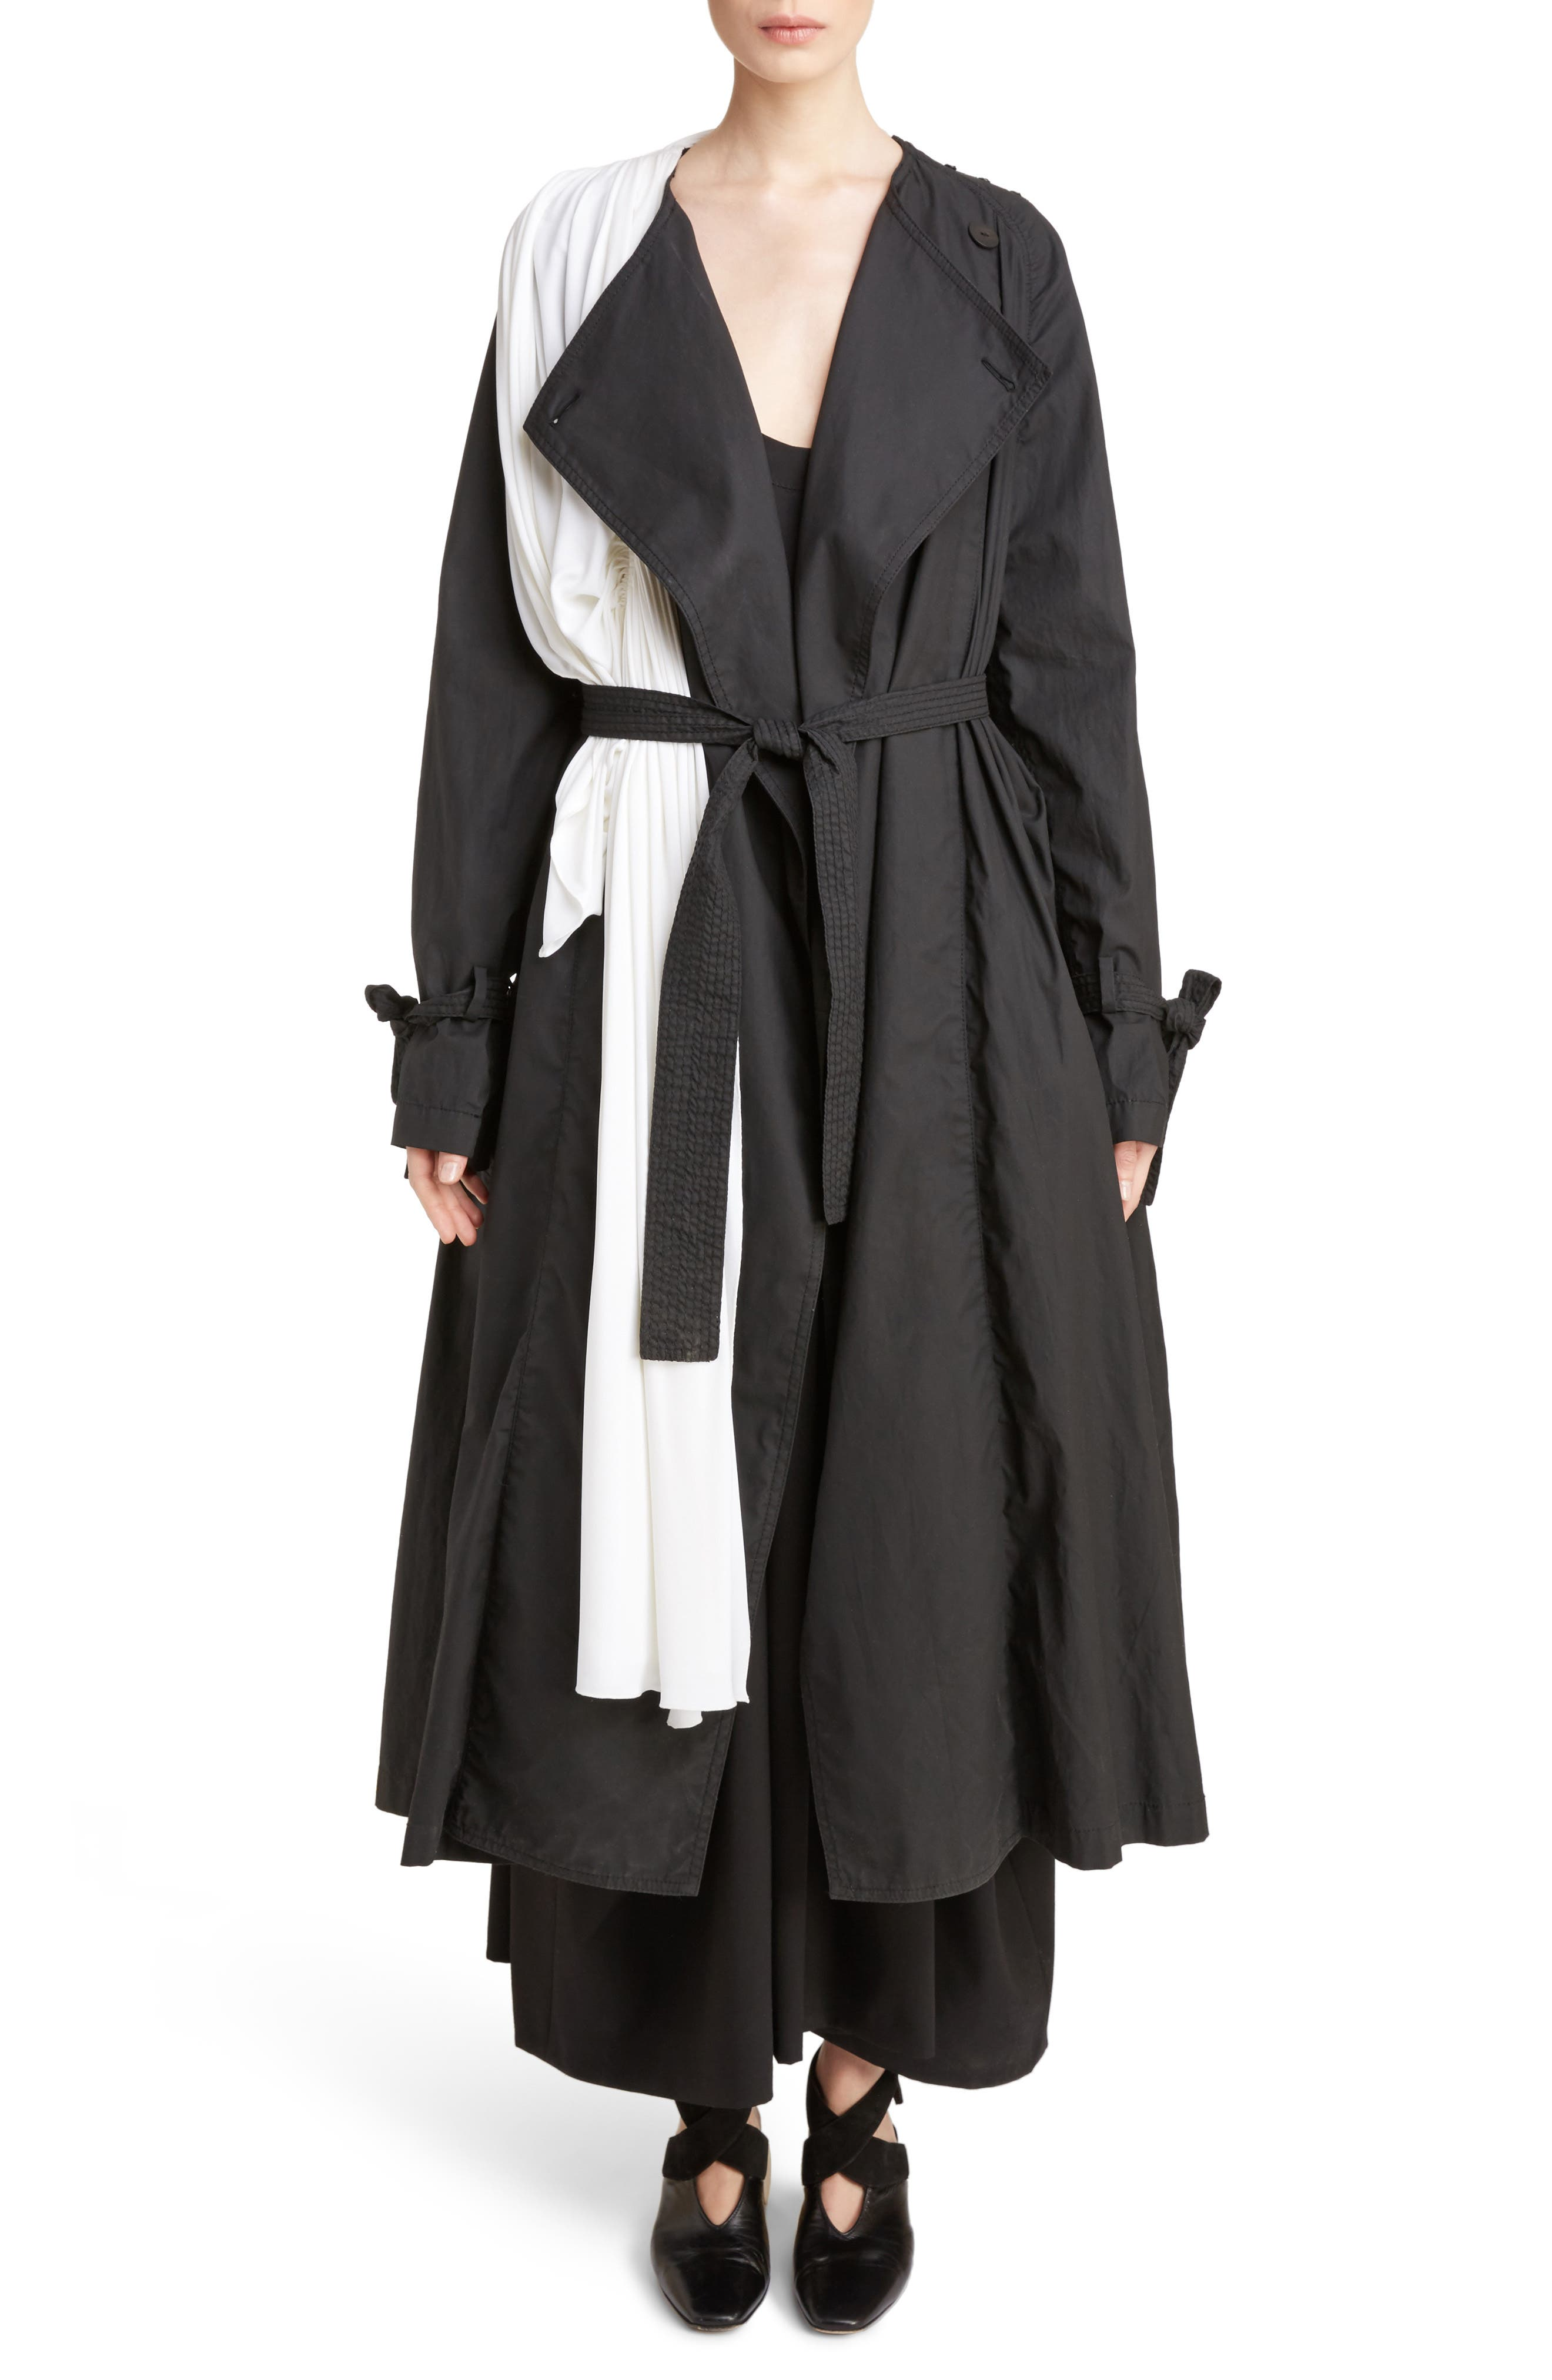 J.W.ANDERSON Draped Collar Trench Coat,                             Main thumbnail 1, color,                             Black